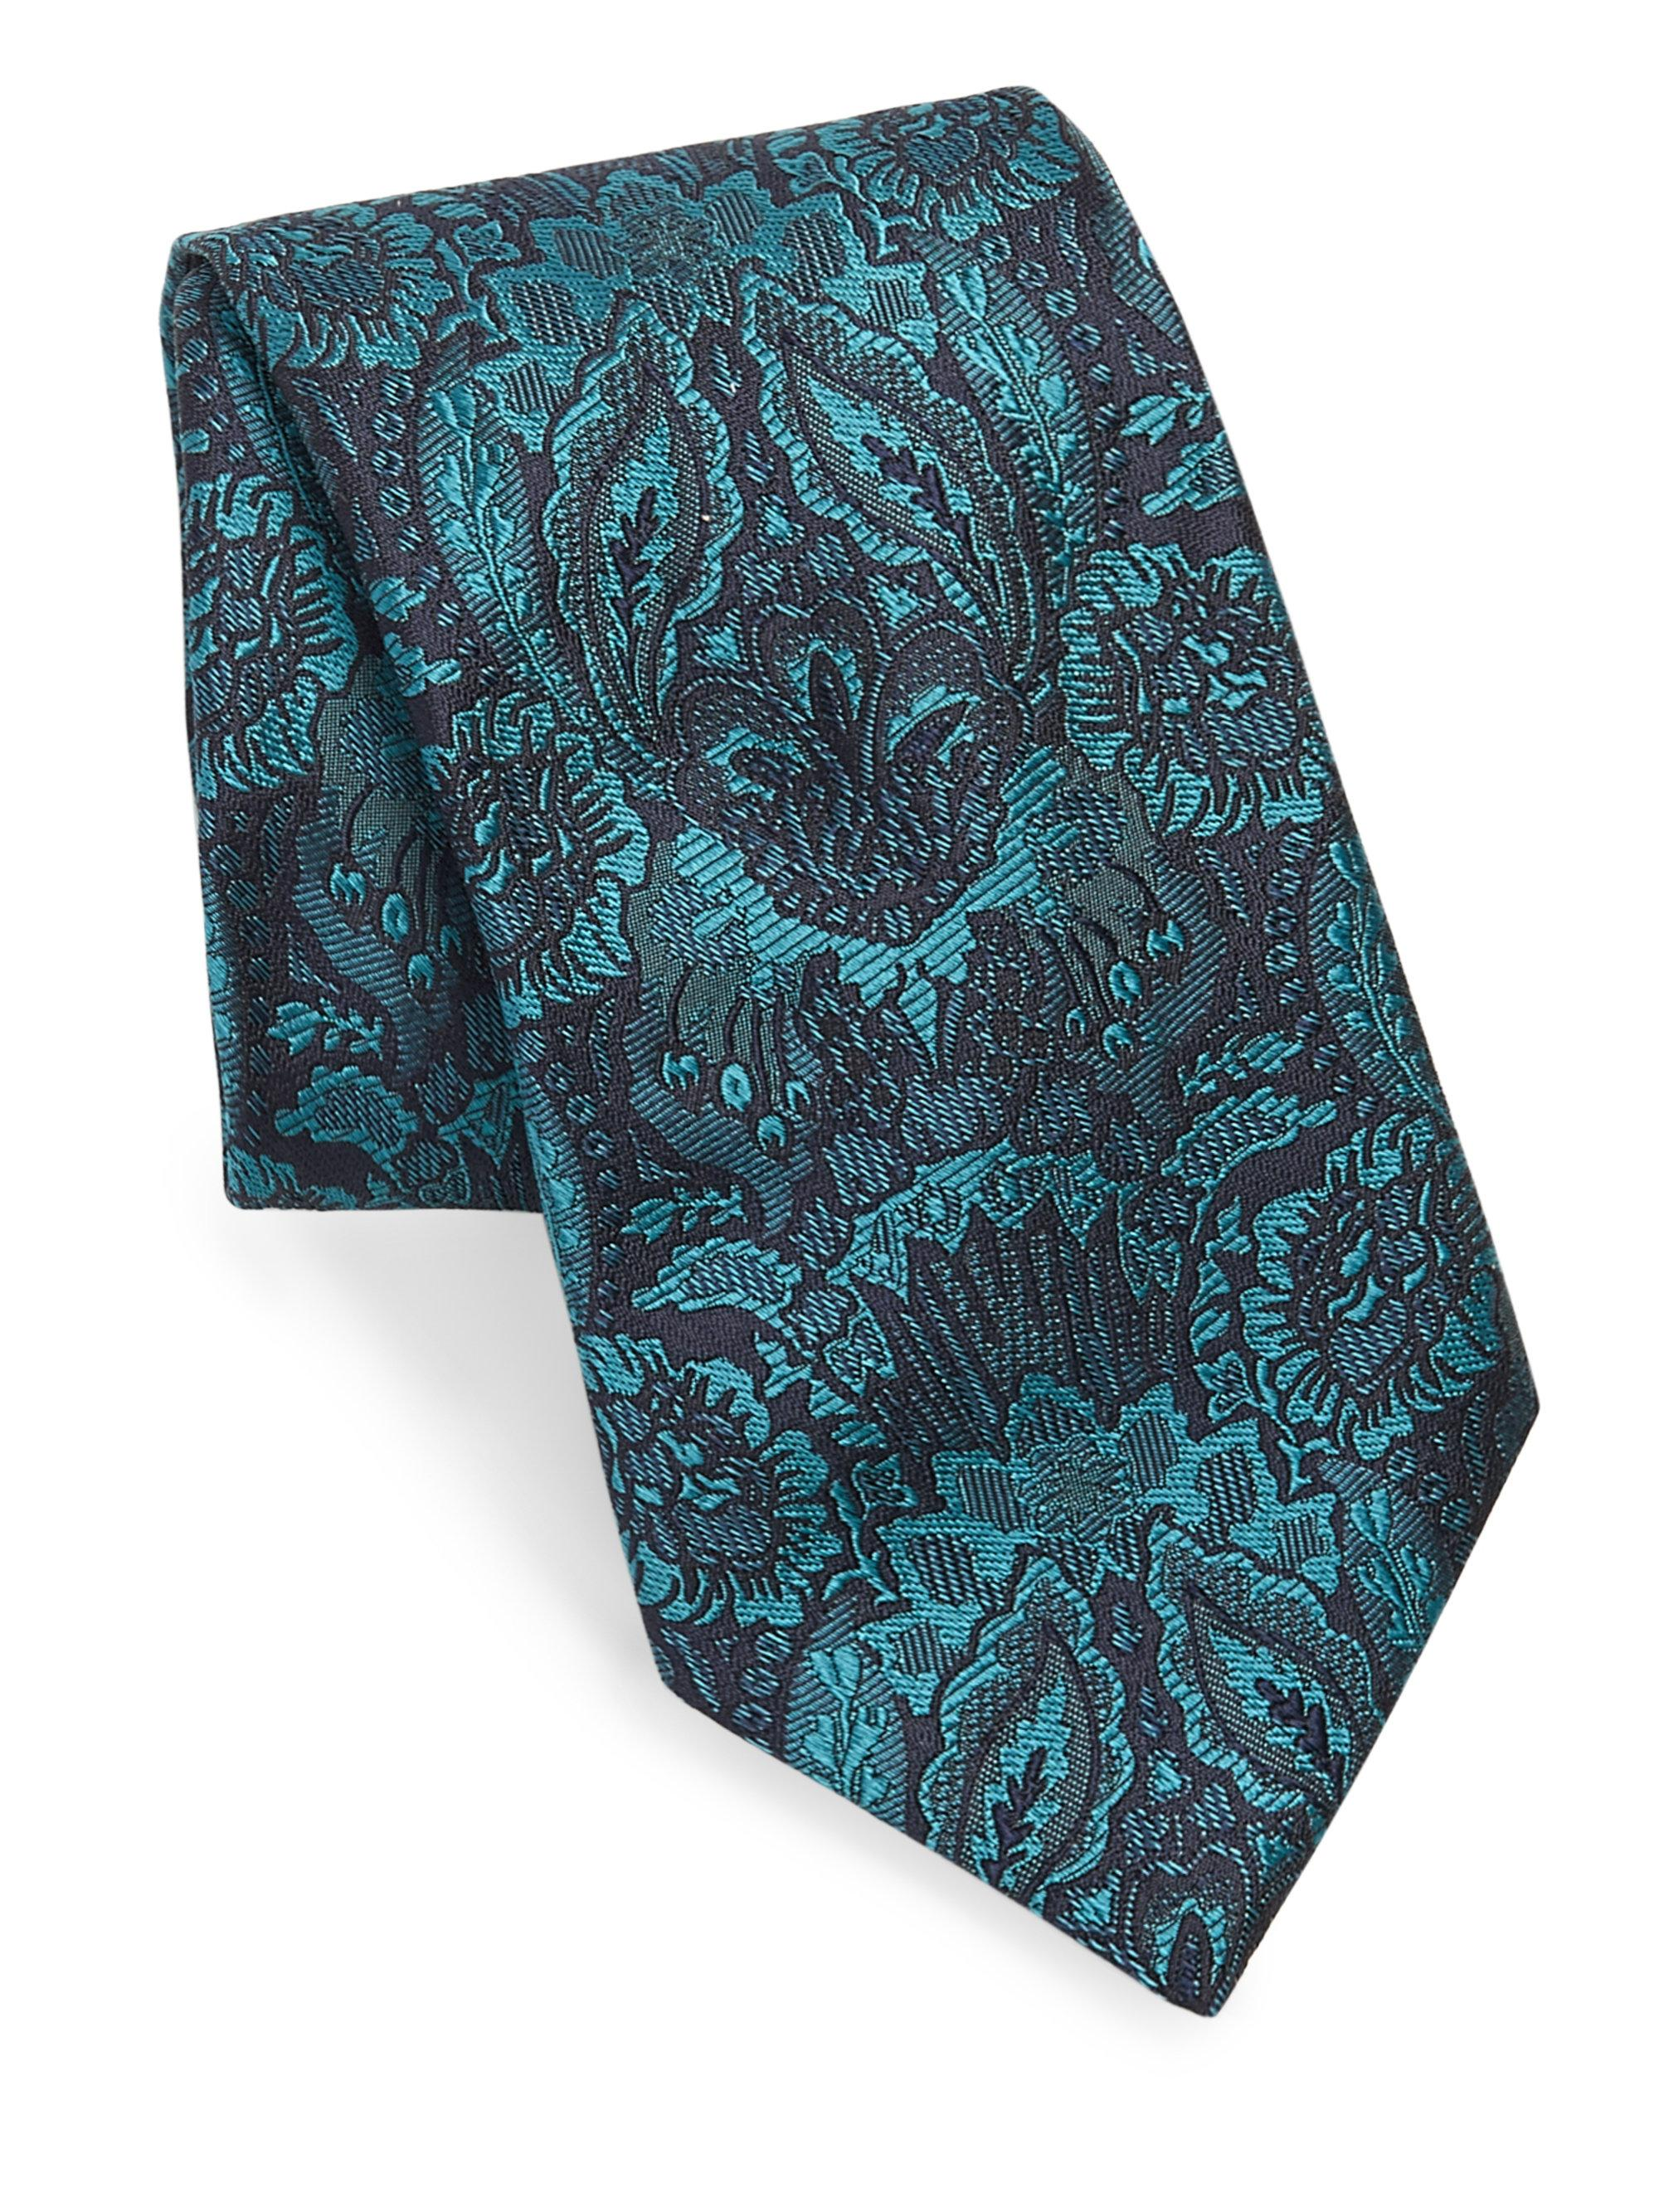 Lyst brioni embroidered floral print silk tie in blue